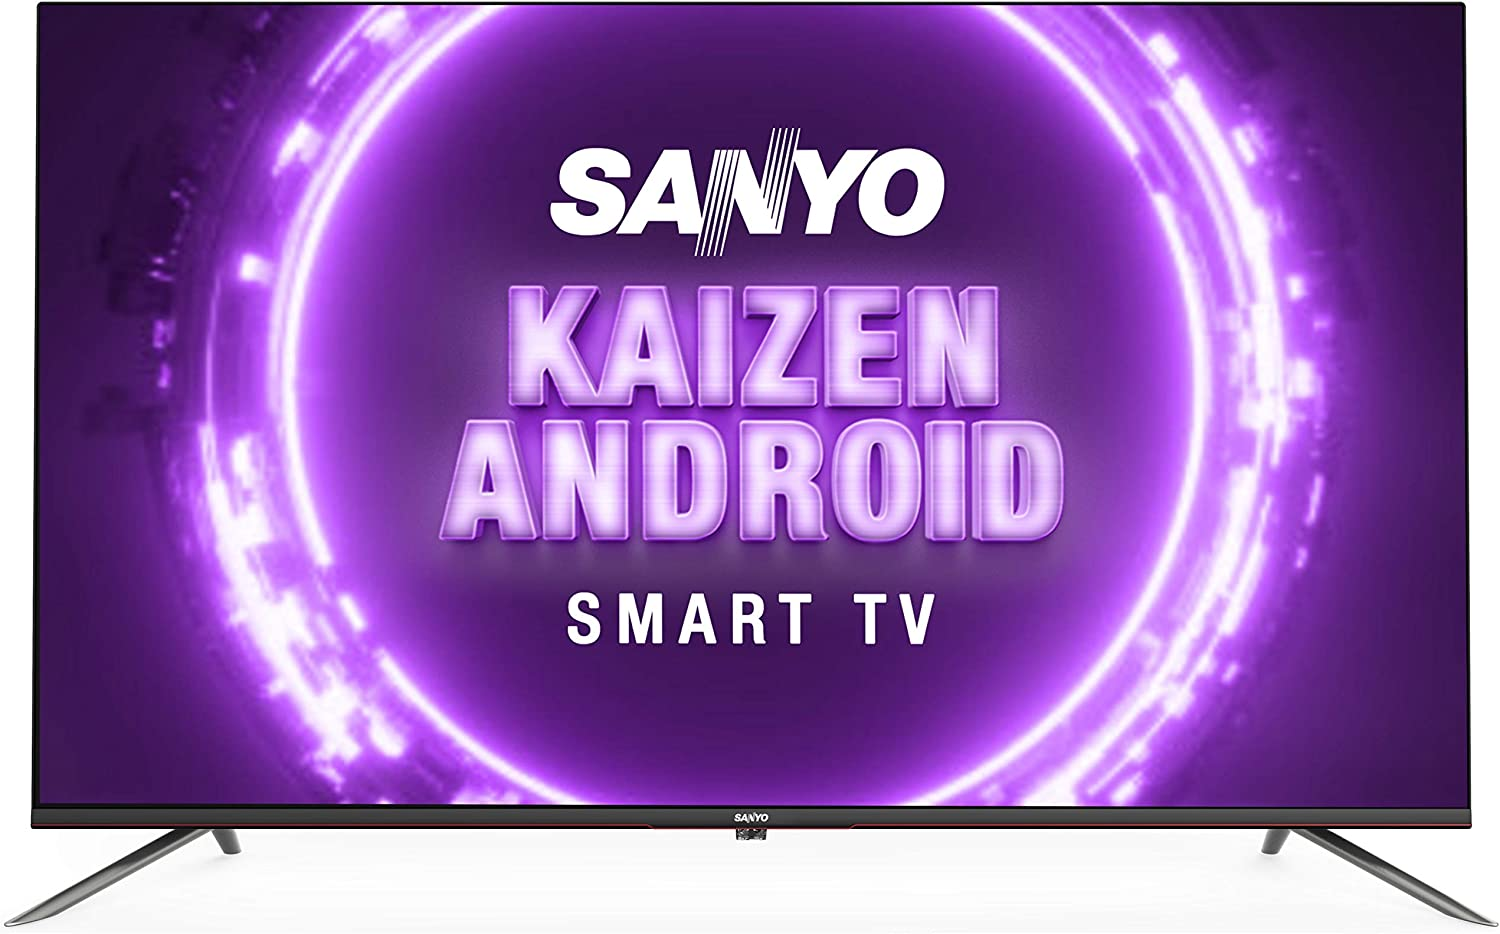 Sanyo 108 cm (43 inches) Kaizen Series 4K Ultra HD Smart Certified Android IPS LED TV XT-43A082U (Black) (2019 Model)